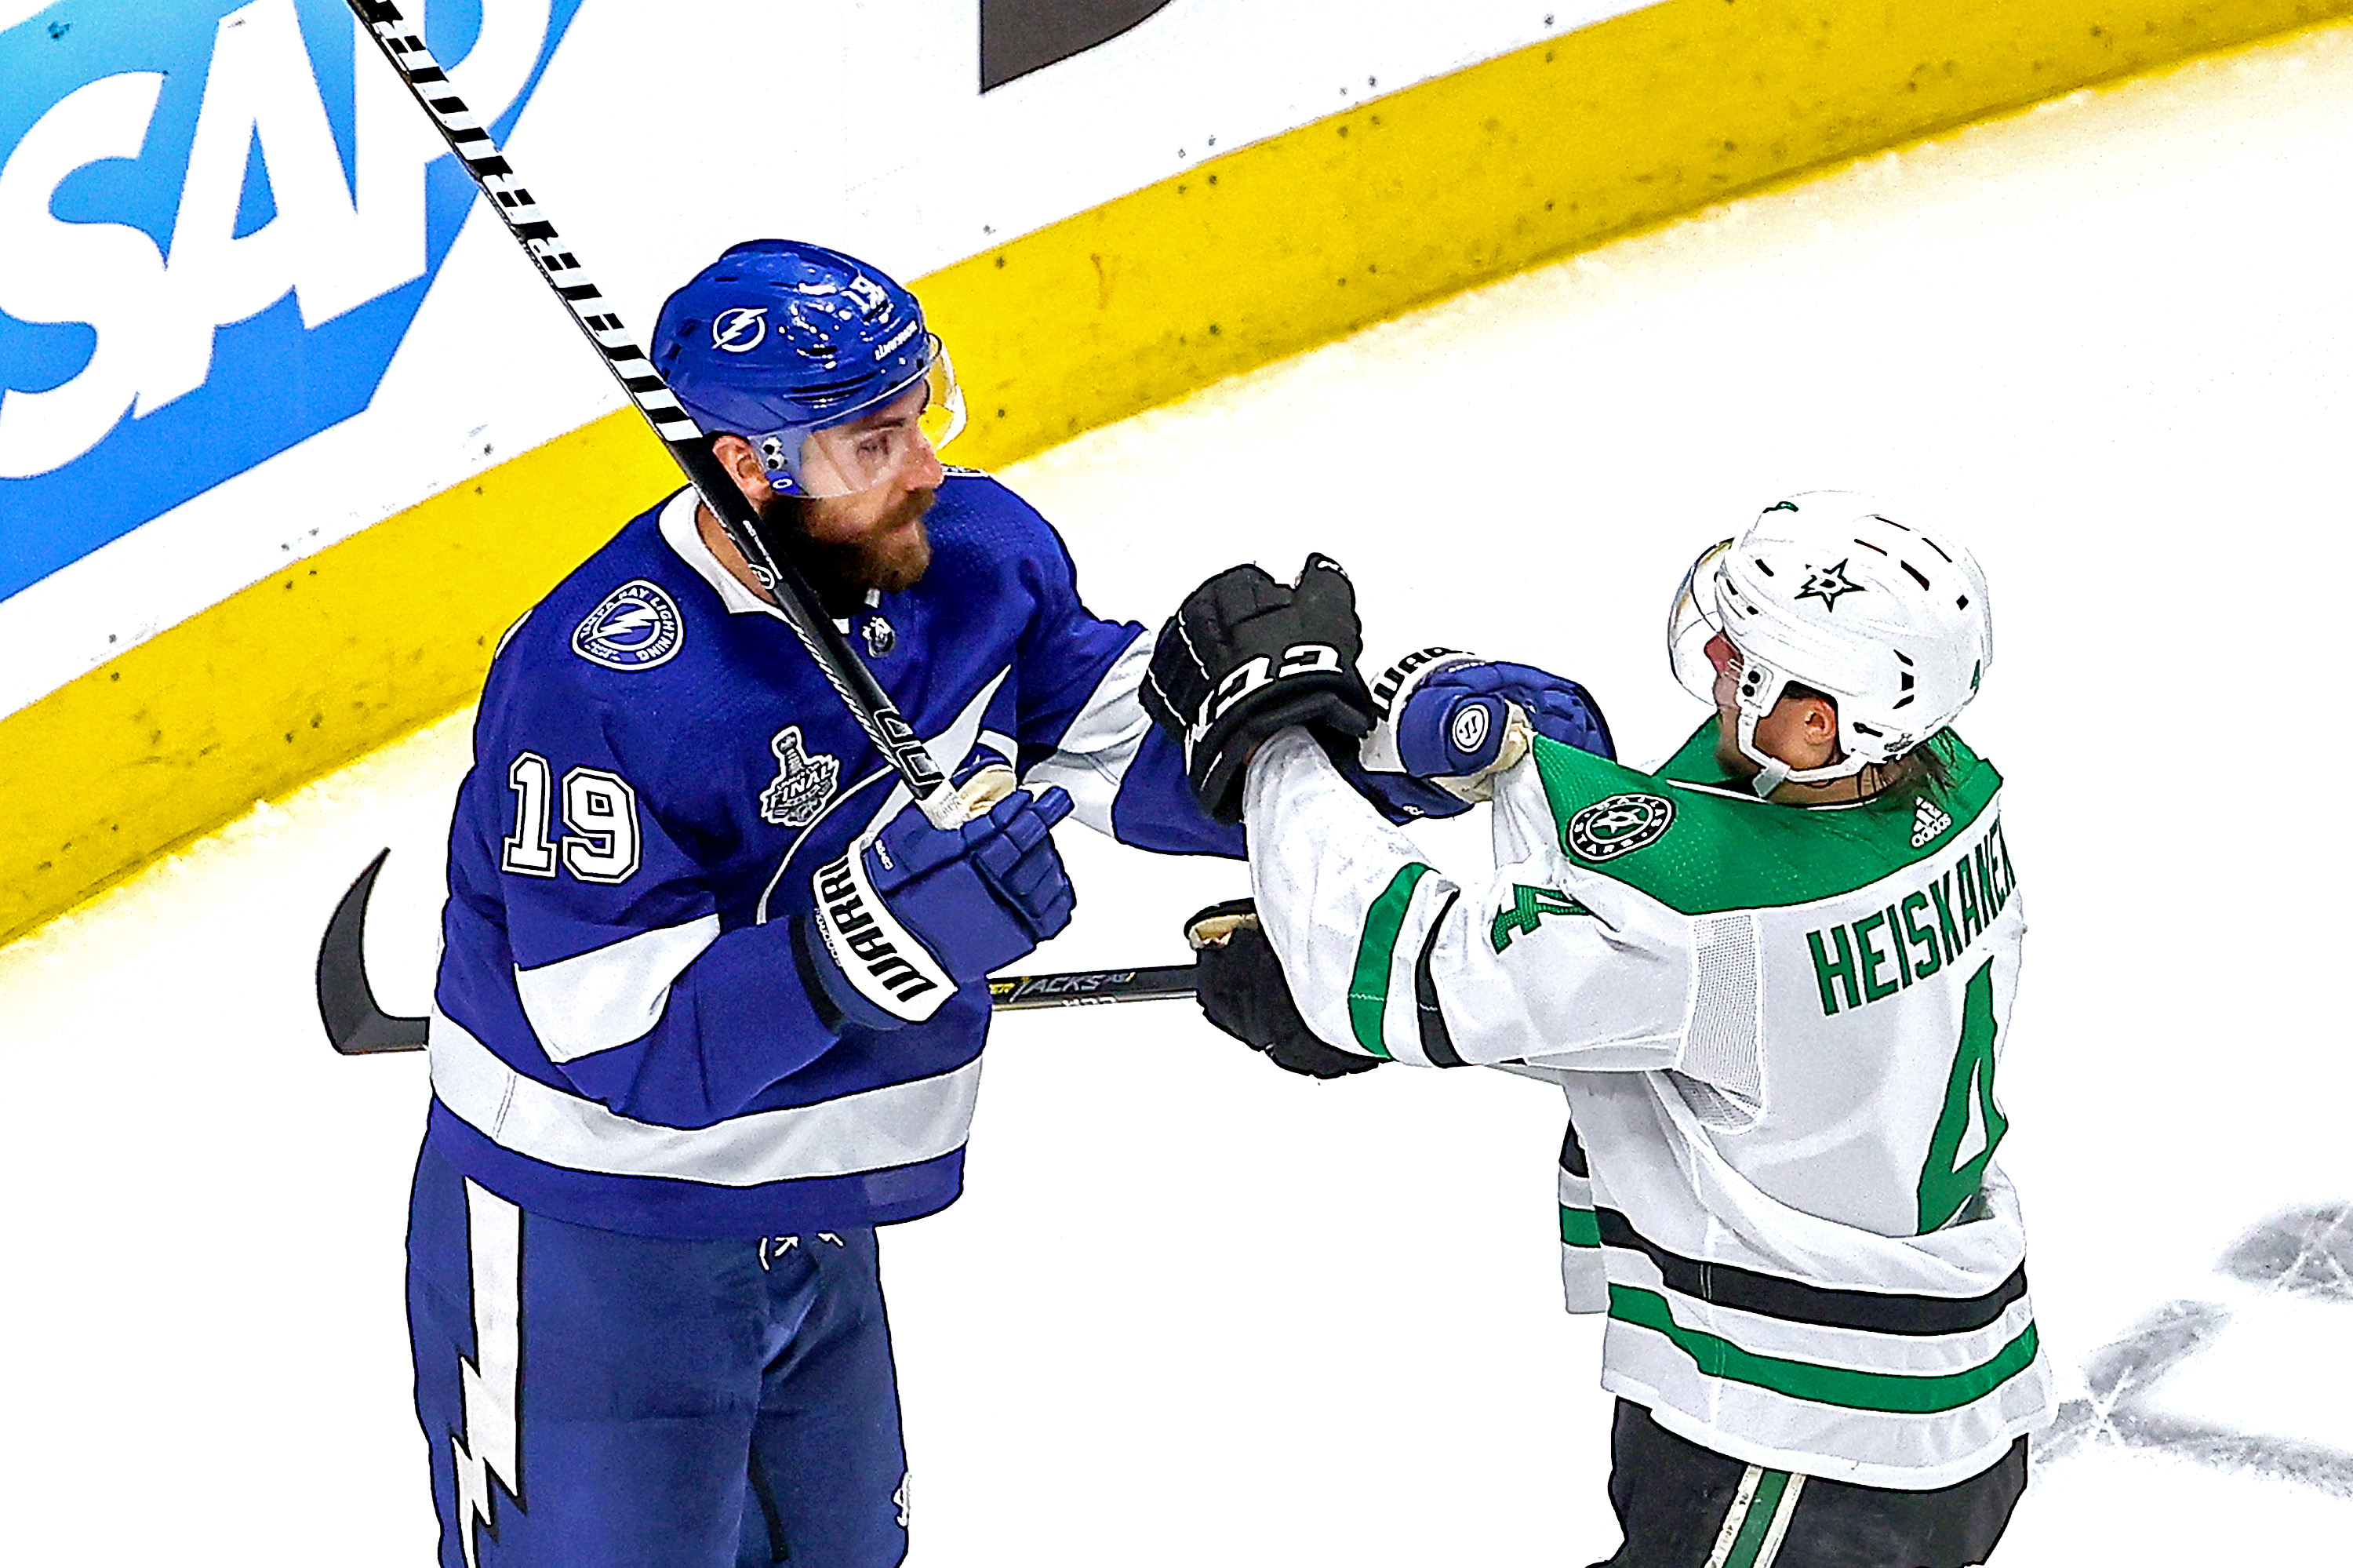 Barclay Goodrow #19 of the Tampa Bay Lightning and Miro Heiskanen #4 of the Dallas Stars scuffle during the third period in Game One of the 2020 NHL Stanley Cup Final at Rogers Place on September 19, 2020 in Edmonton, Alberta, Canada.